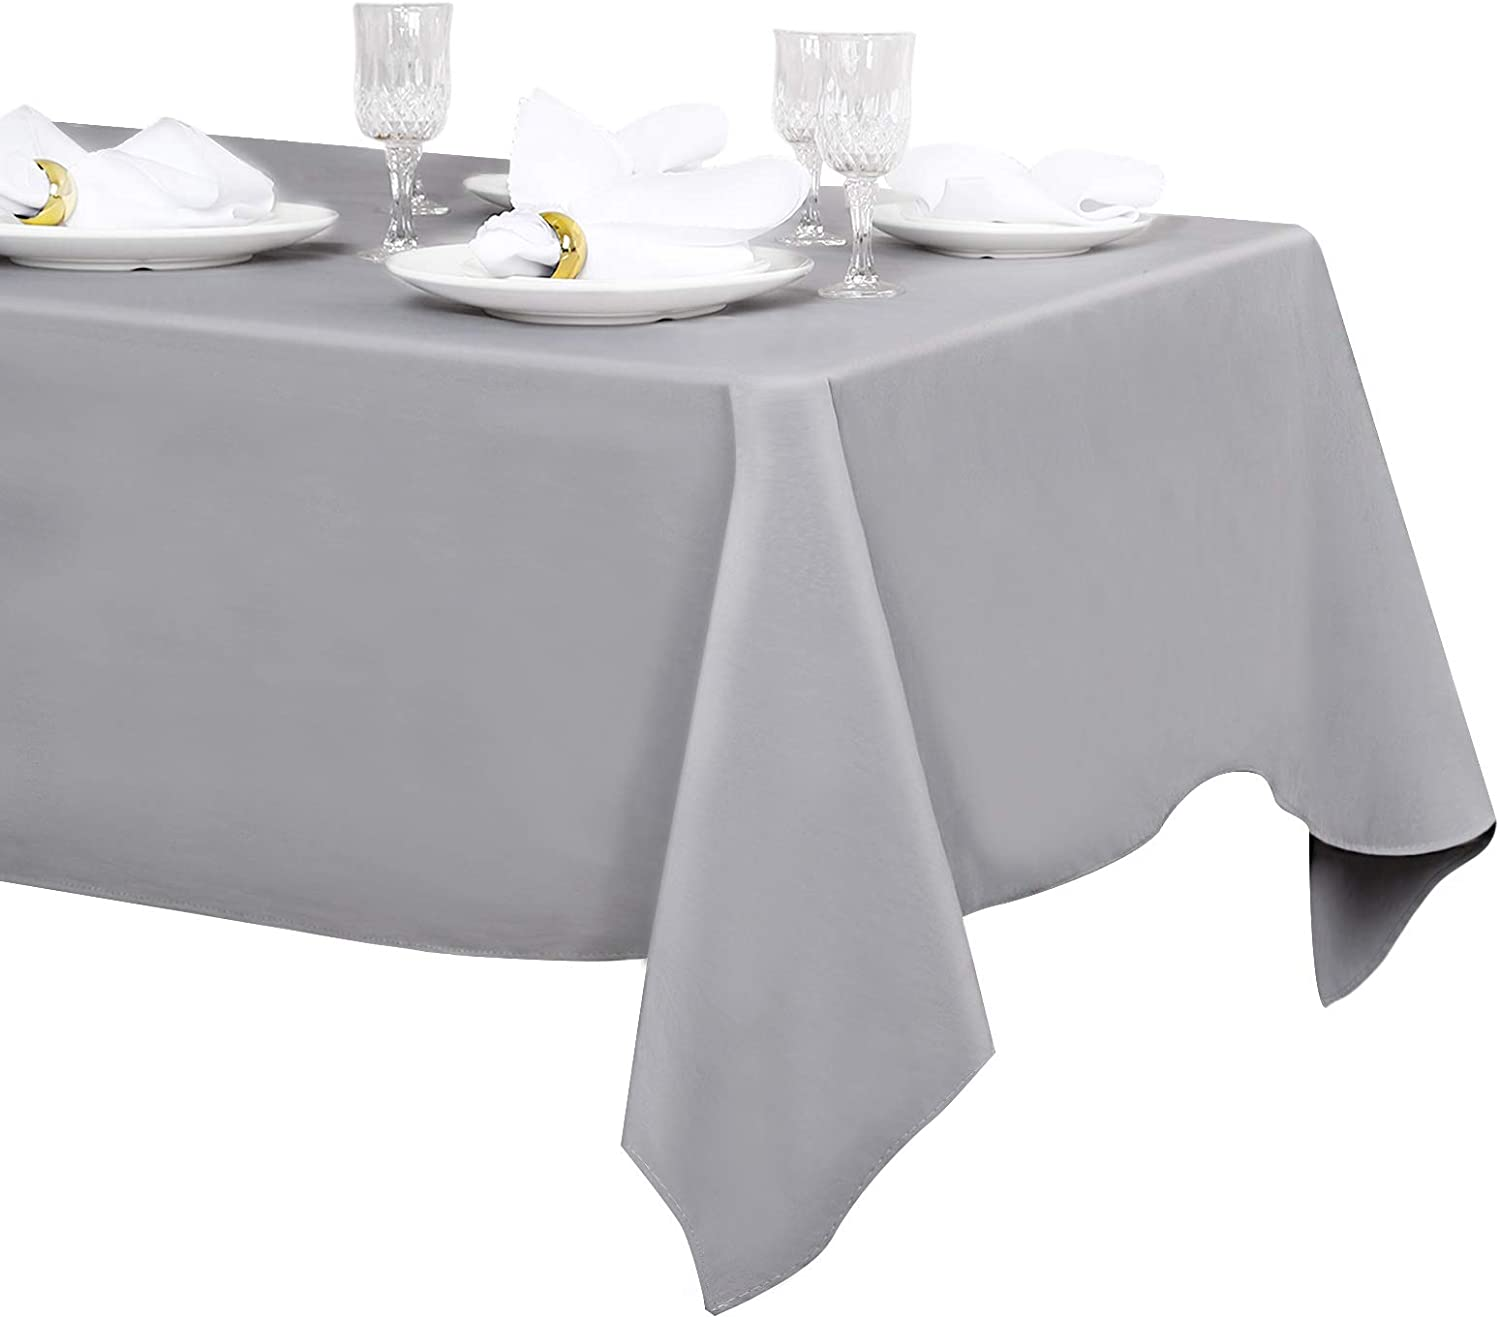 LuoluoHouse White Tablecloth Rectangle Table Cover Kitchen Linen 60x102 inch Waterproof Tablecloth Outdoor Table Decoration Wrinkle and Stain Resistant Table Fabric: Home & Kitchen